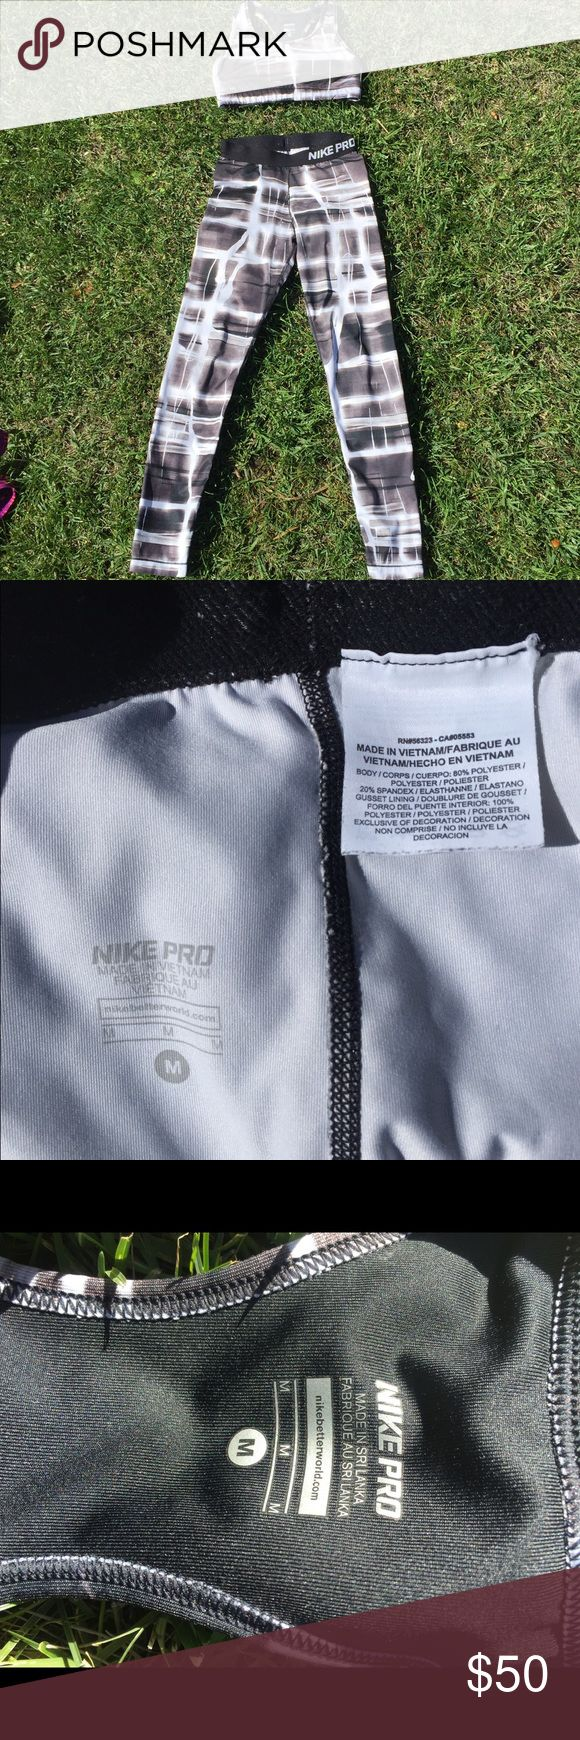 Nike Pro pants and bra The Nike Pro women's training pants and bra are designed with stretchy dri-FIT fabric that helps keep your dry and comfortable. Medium Bra. Medium Pants Nike Pants Leggings